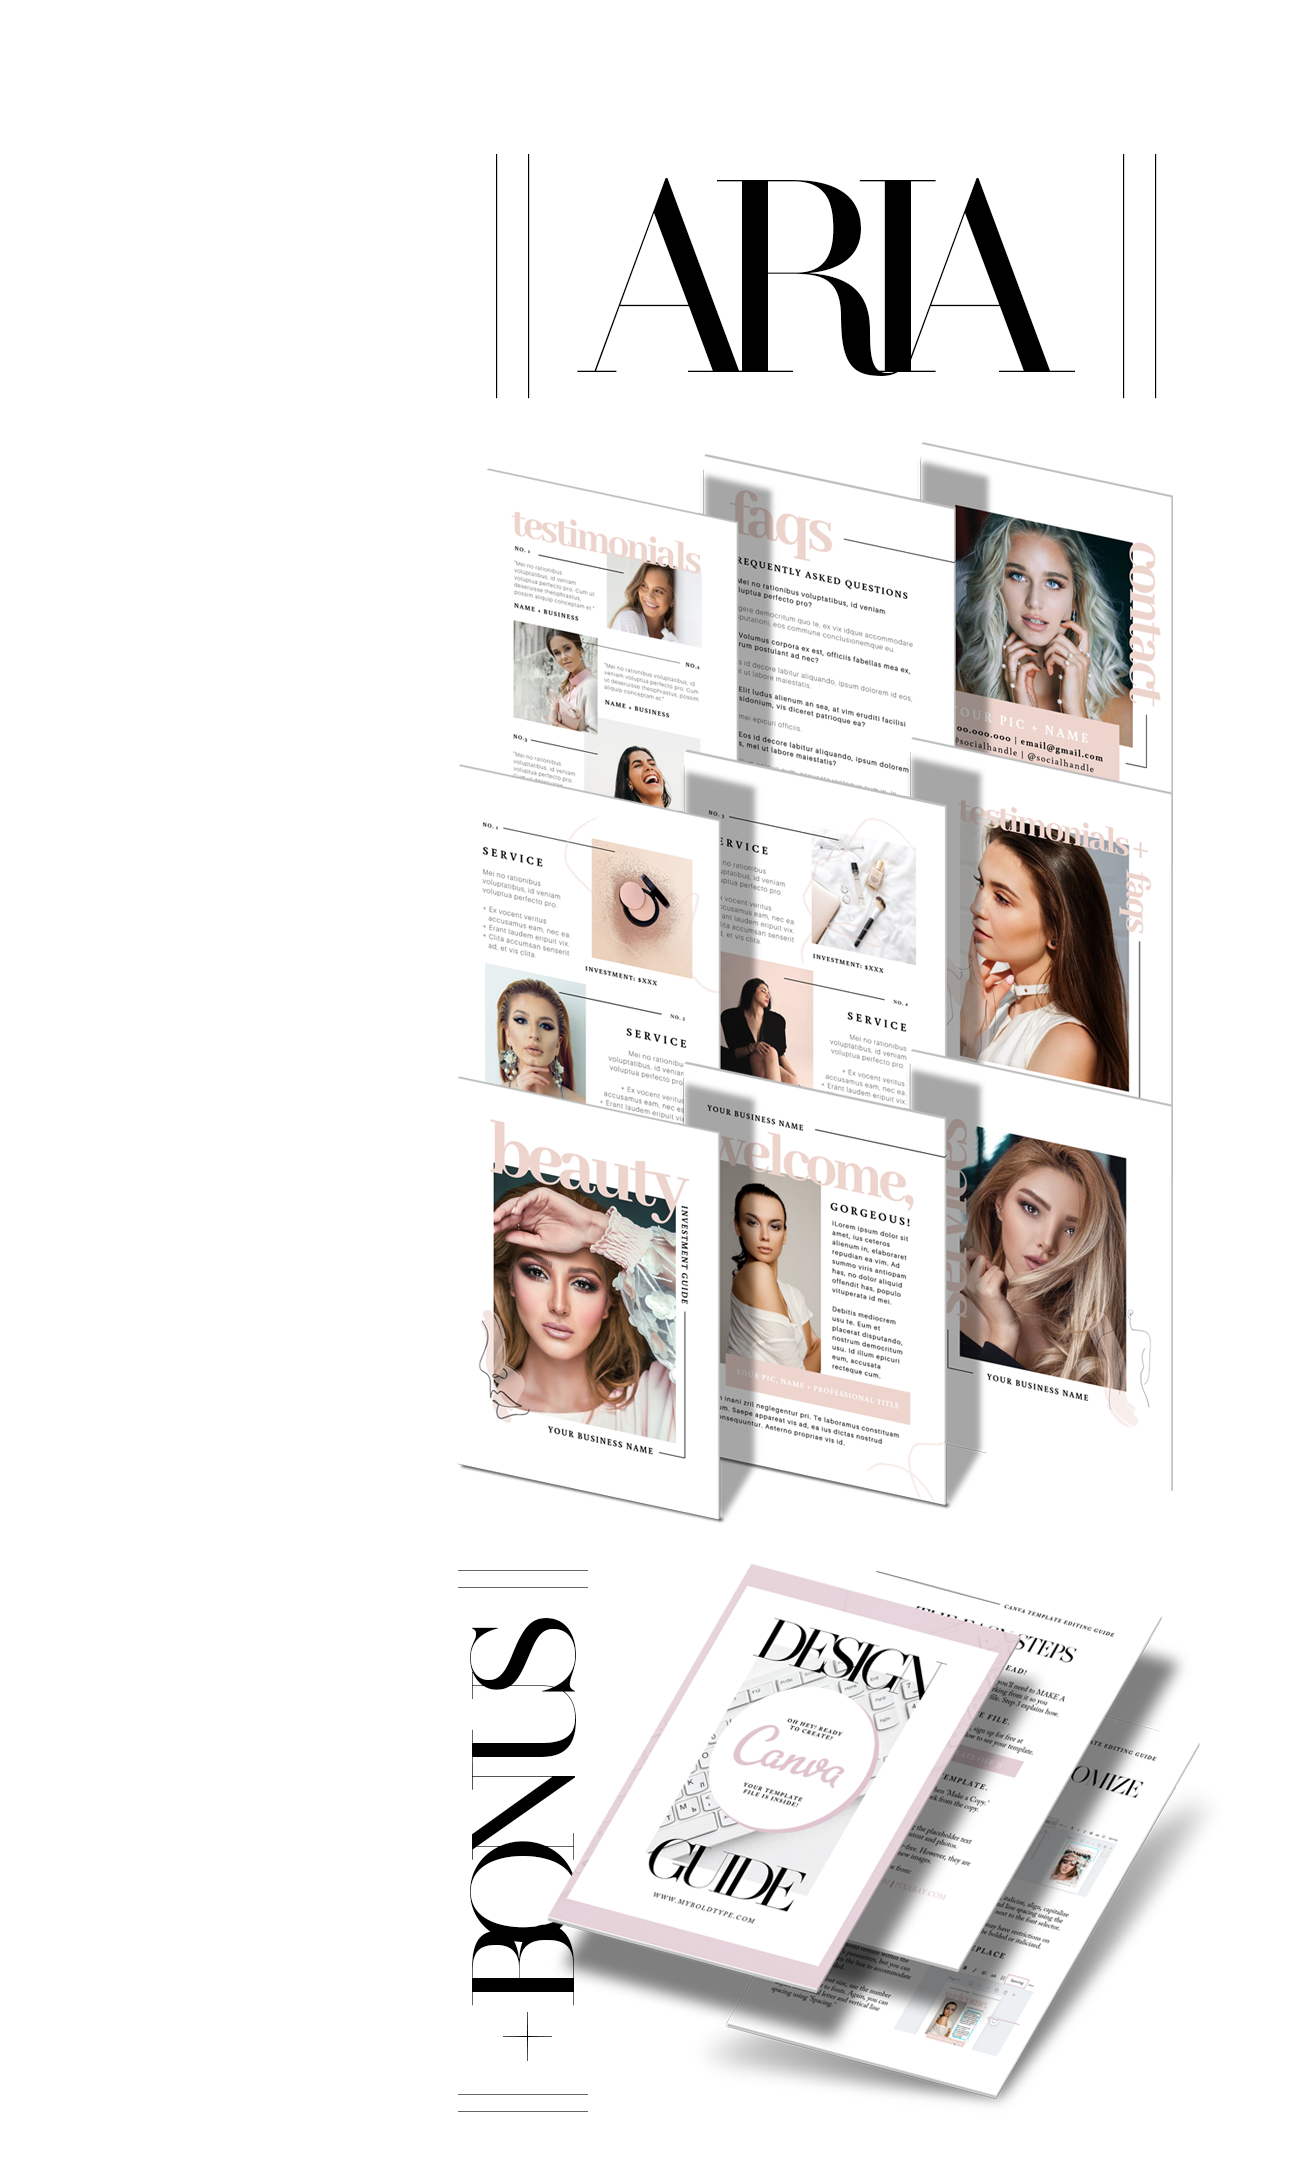 aria includes: - + 9 fully designed and customizable pages sized at 8.5 x 11, including:NO.1 || COVER PAGENO. 2 || WELCOME LETTERNO. 3 || SERVICES COVERNO. 4 || SERVICES PART 1NO. 5 || SERVICES PART 2NO. 6 || TESTIMONIALS COVERNO. 7 || TESTIMONIALSNO. 8 || FREQUENTLY ASKED Q'SNO. 9 || CONTACT INFO+ All featured stock images+ All featured Canva graphic elements+ All featured fonts (no downloads)+ BONUS | Canva editing guide